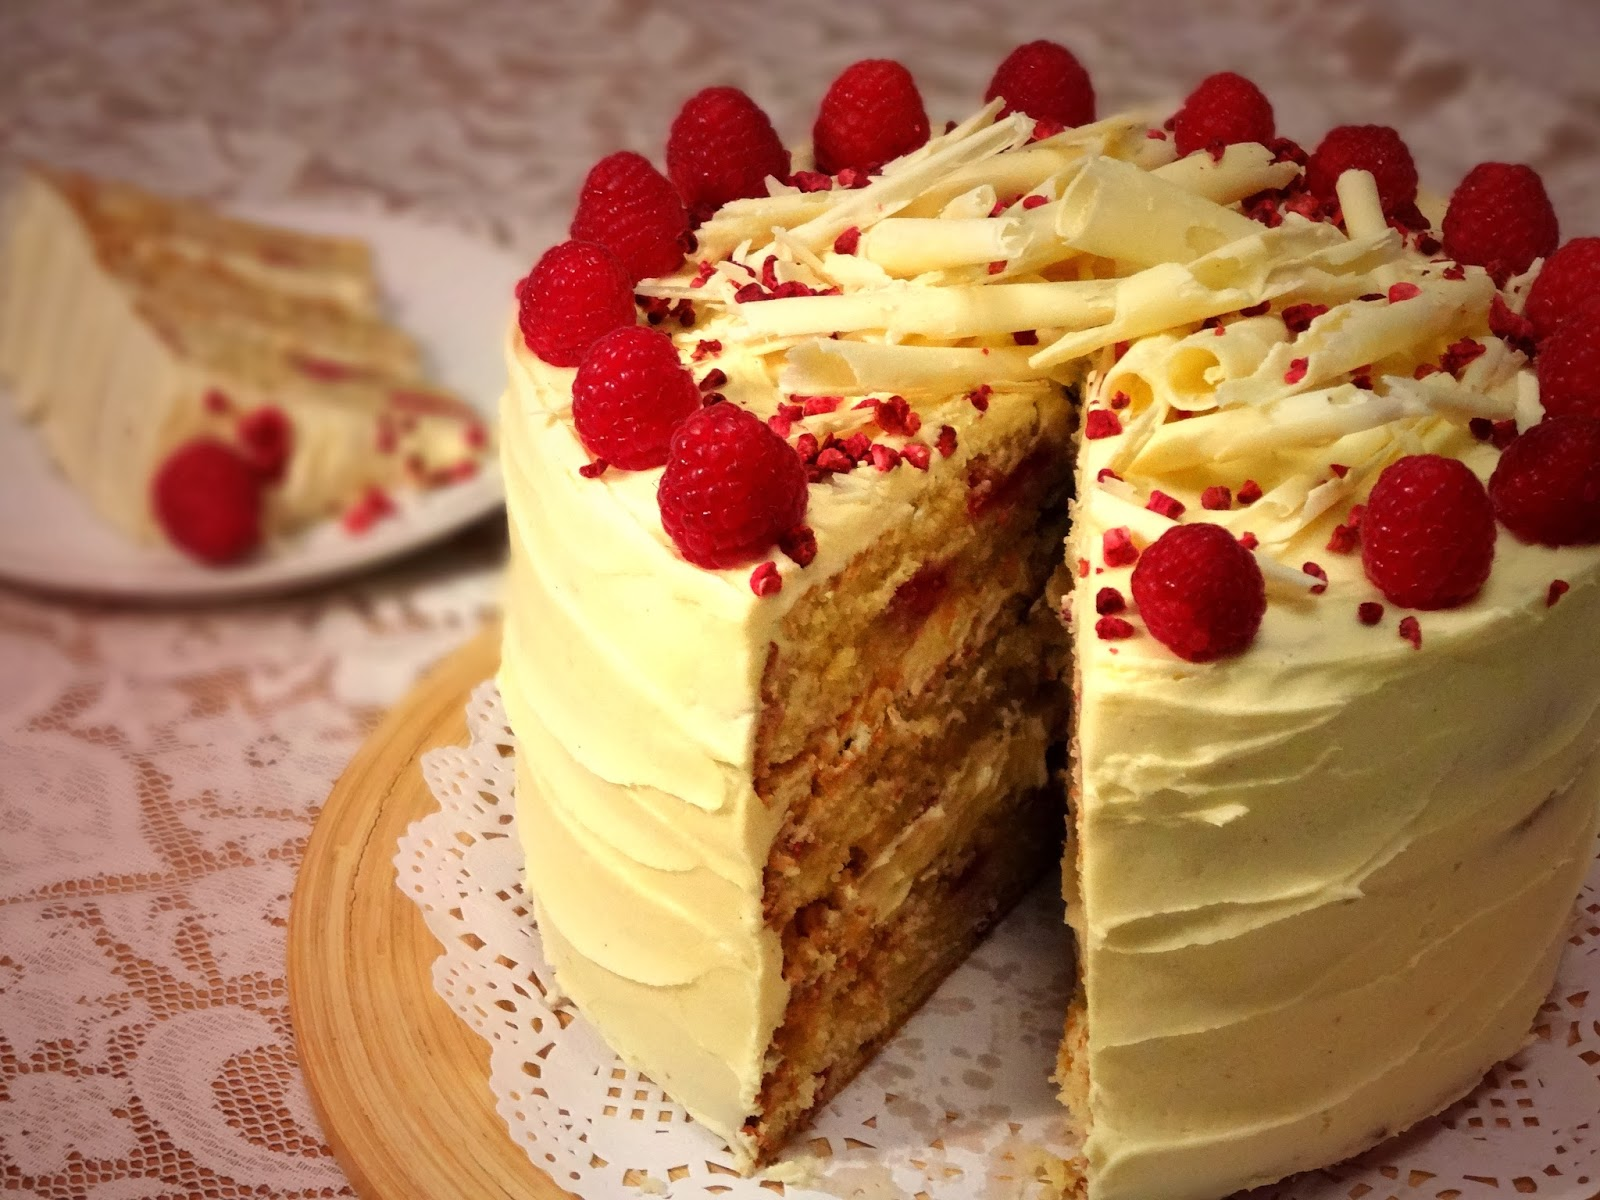 Classic Cakes With Raspberry And Chocolate